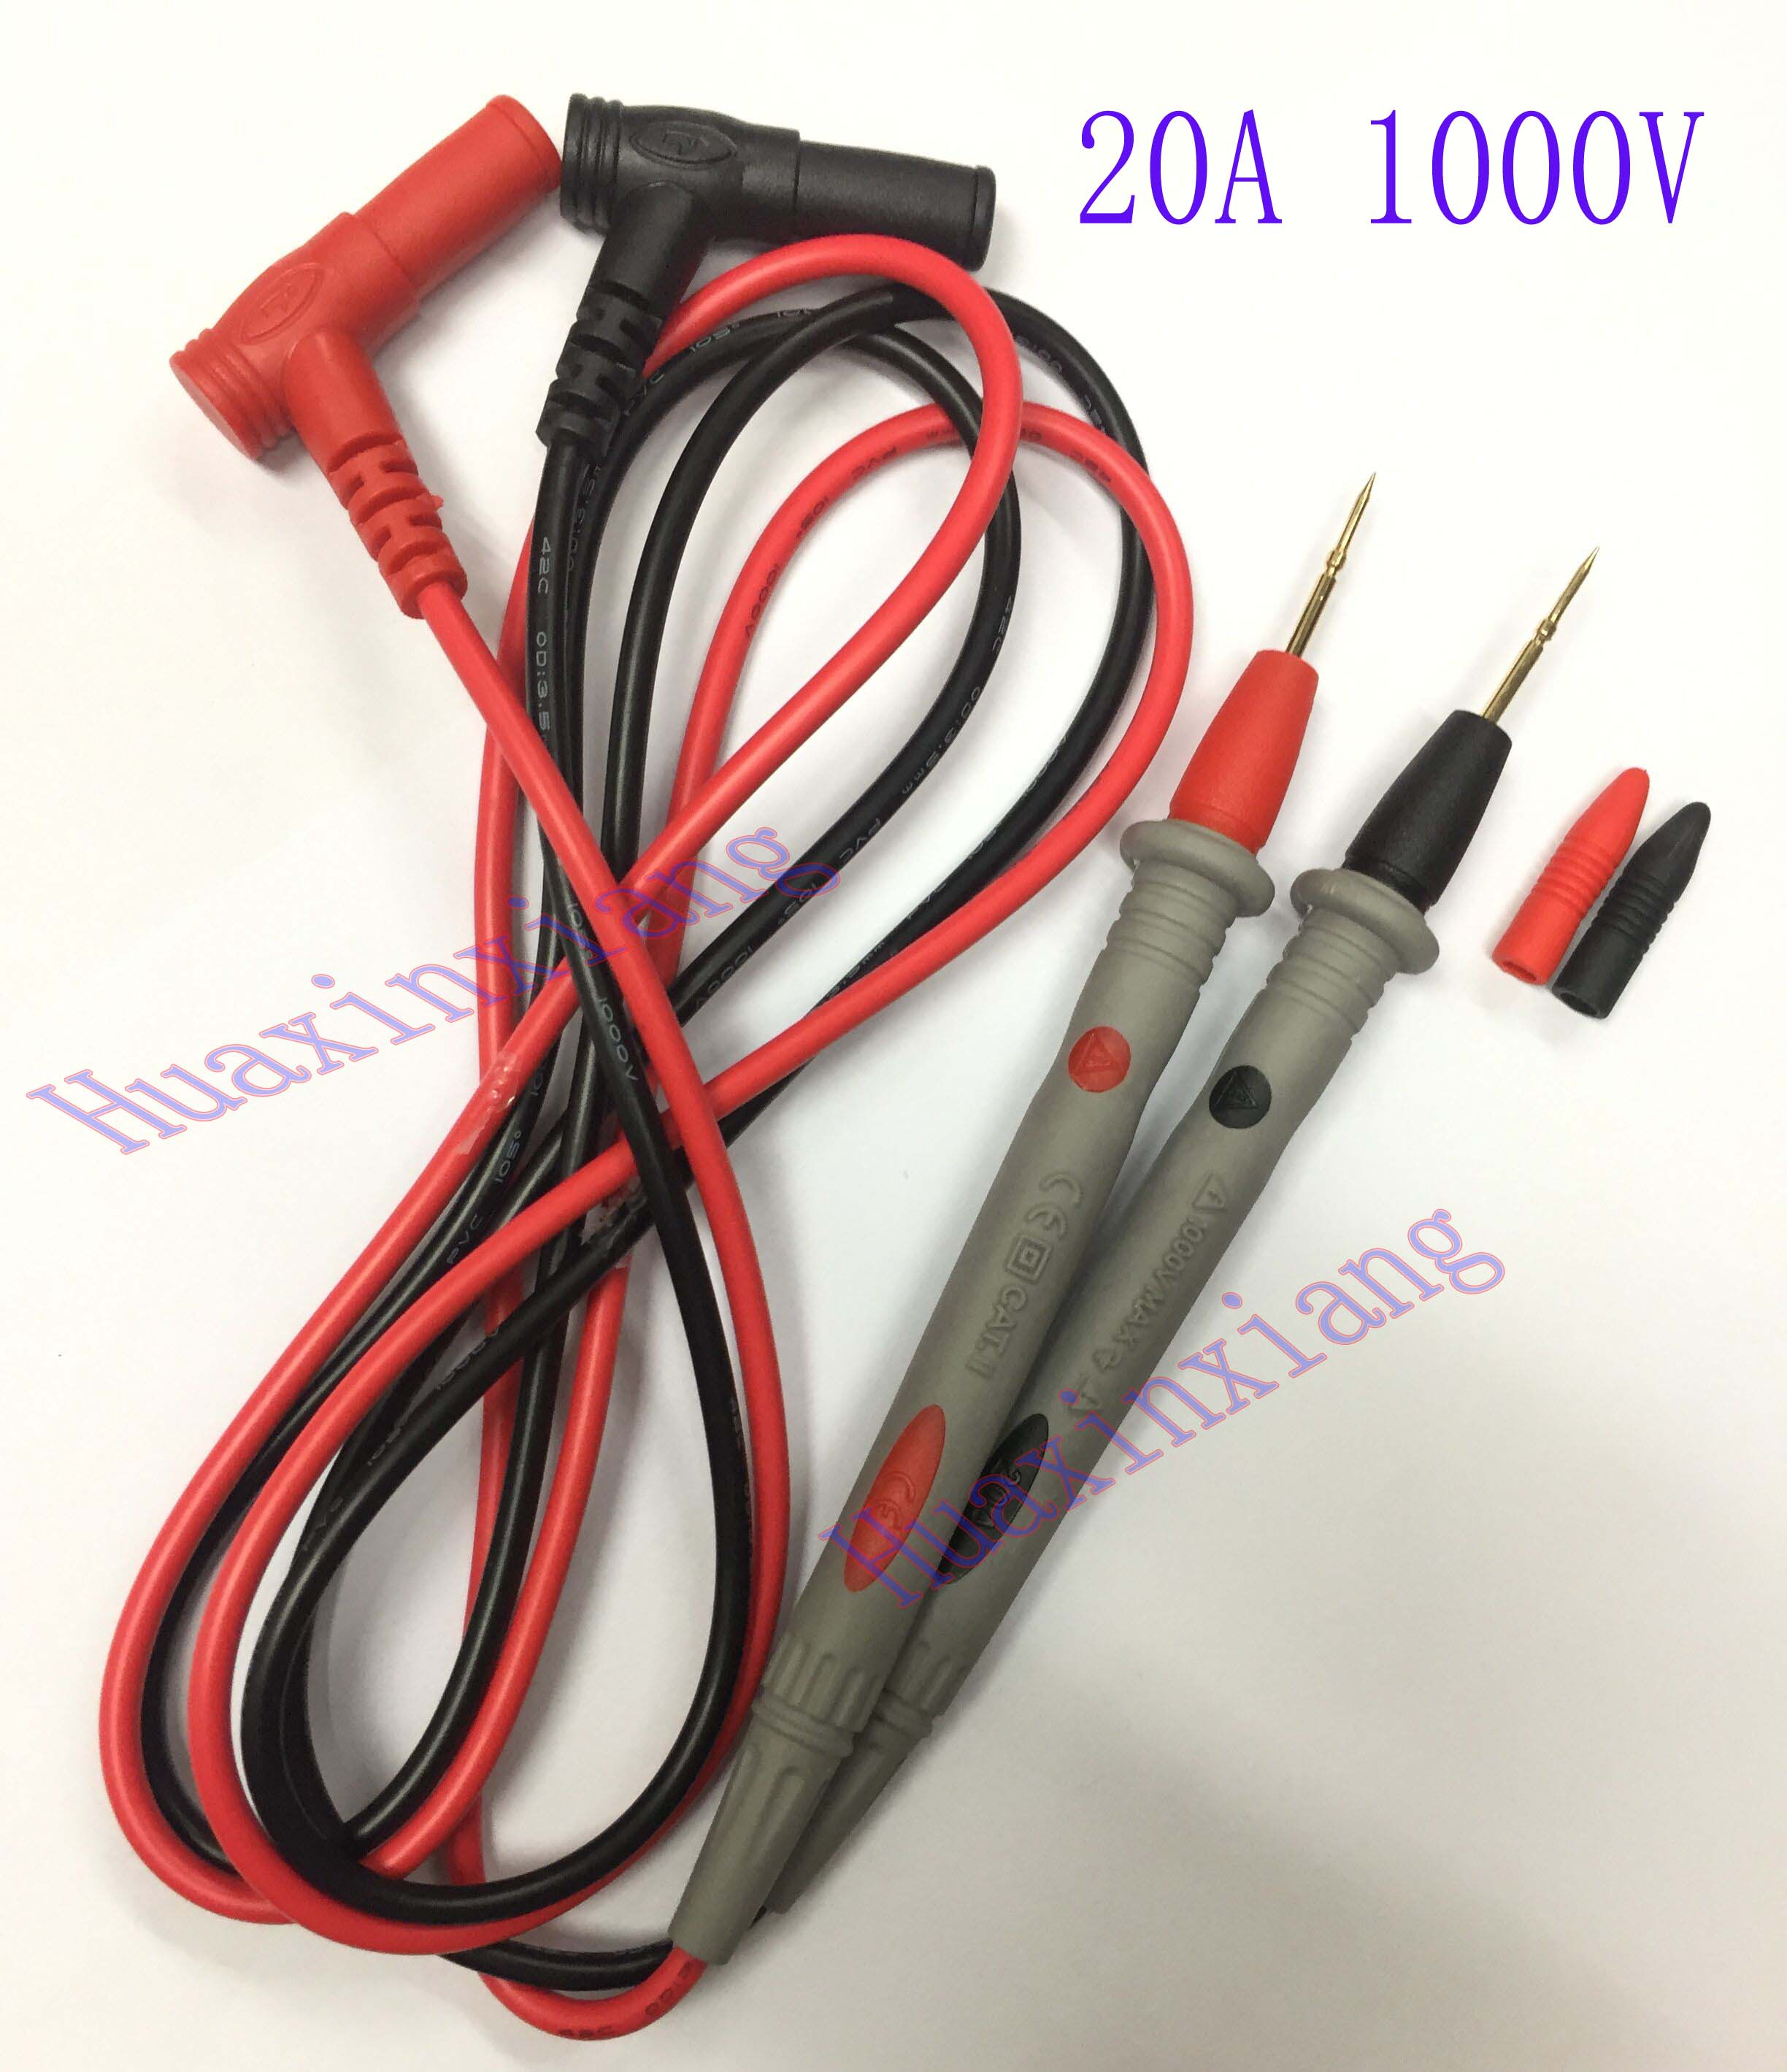 1PCS Multimeter Test Lead Probe Wire Cable Test Lead Wire